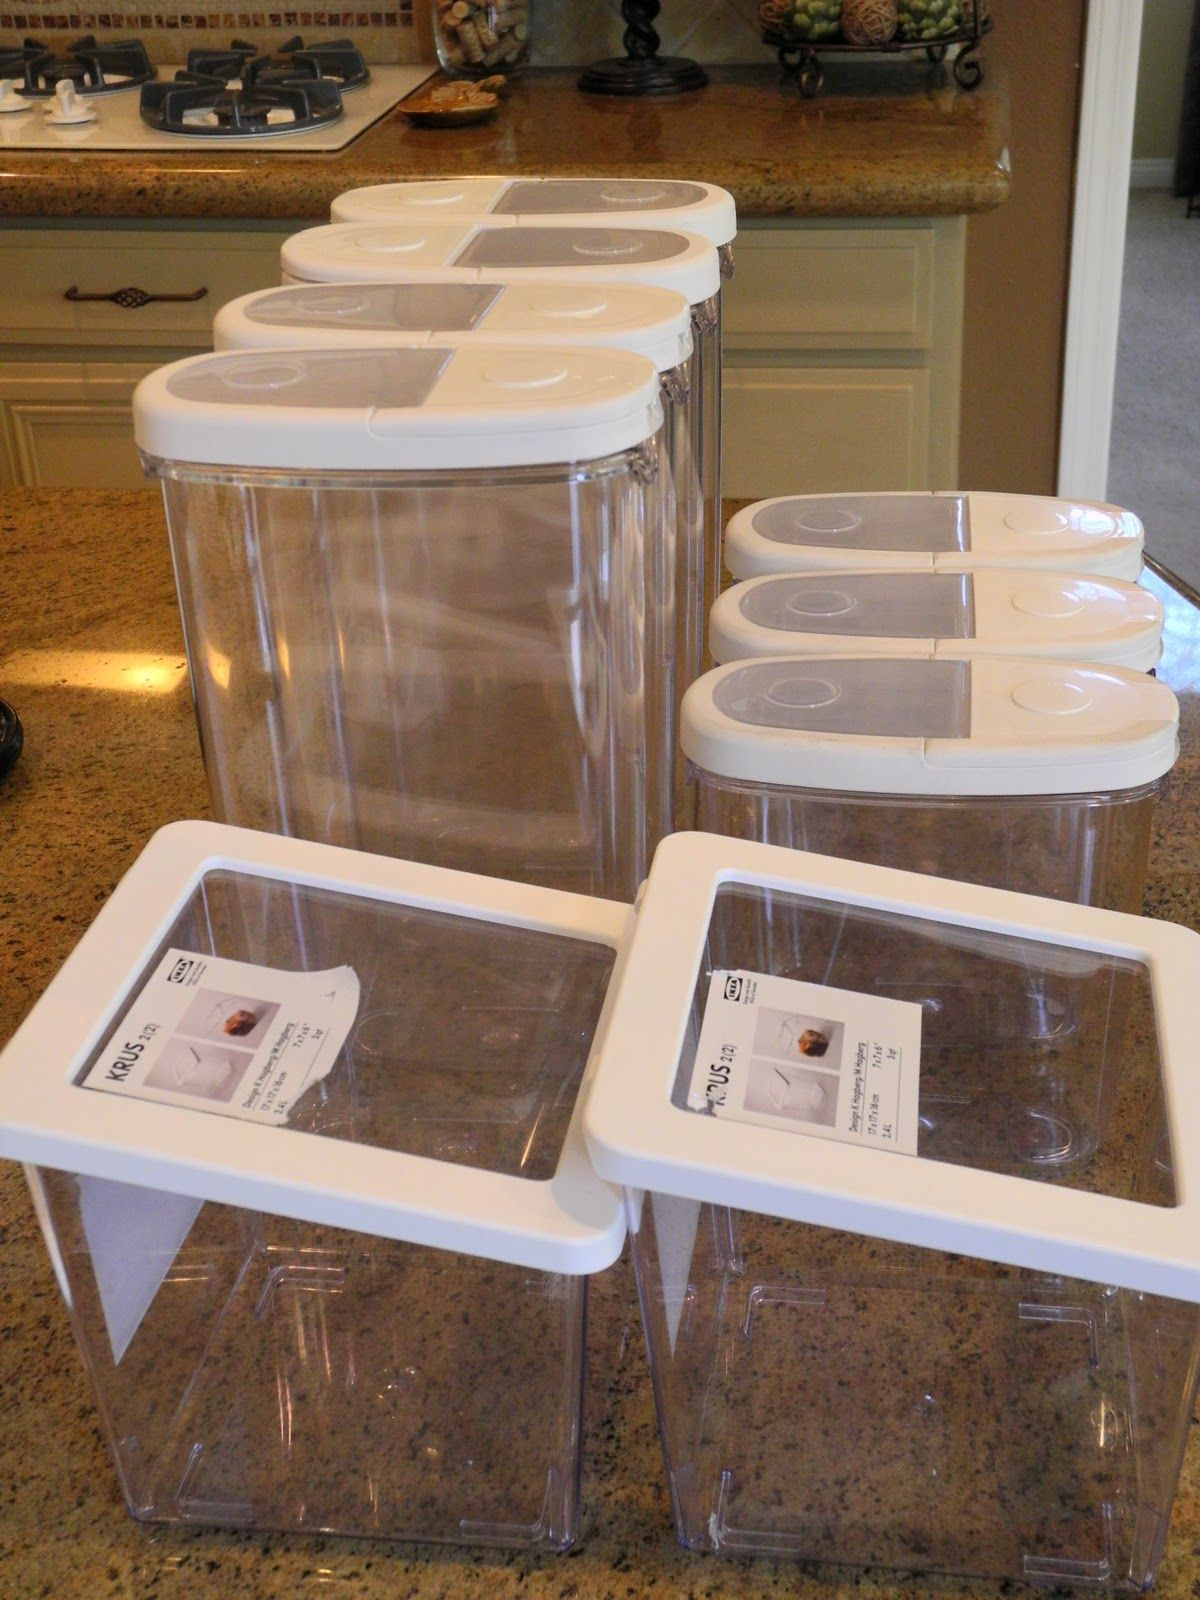 kitchen drawer organizer ikea hand soap bins for organizing pantry bpa free containers